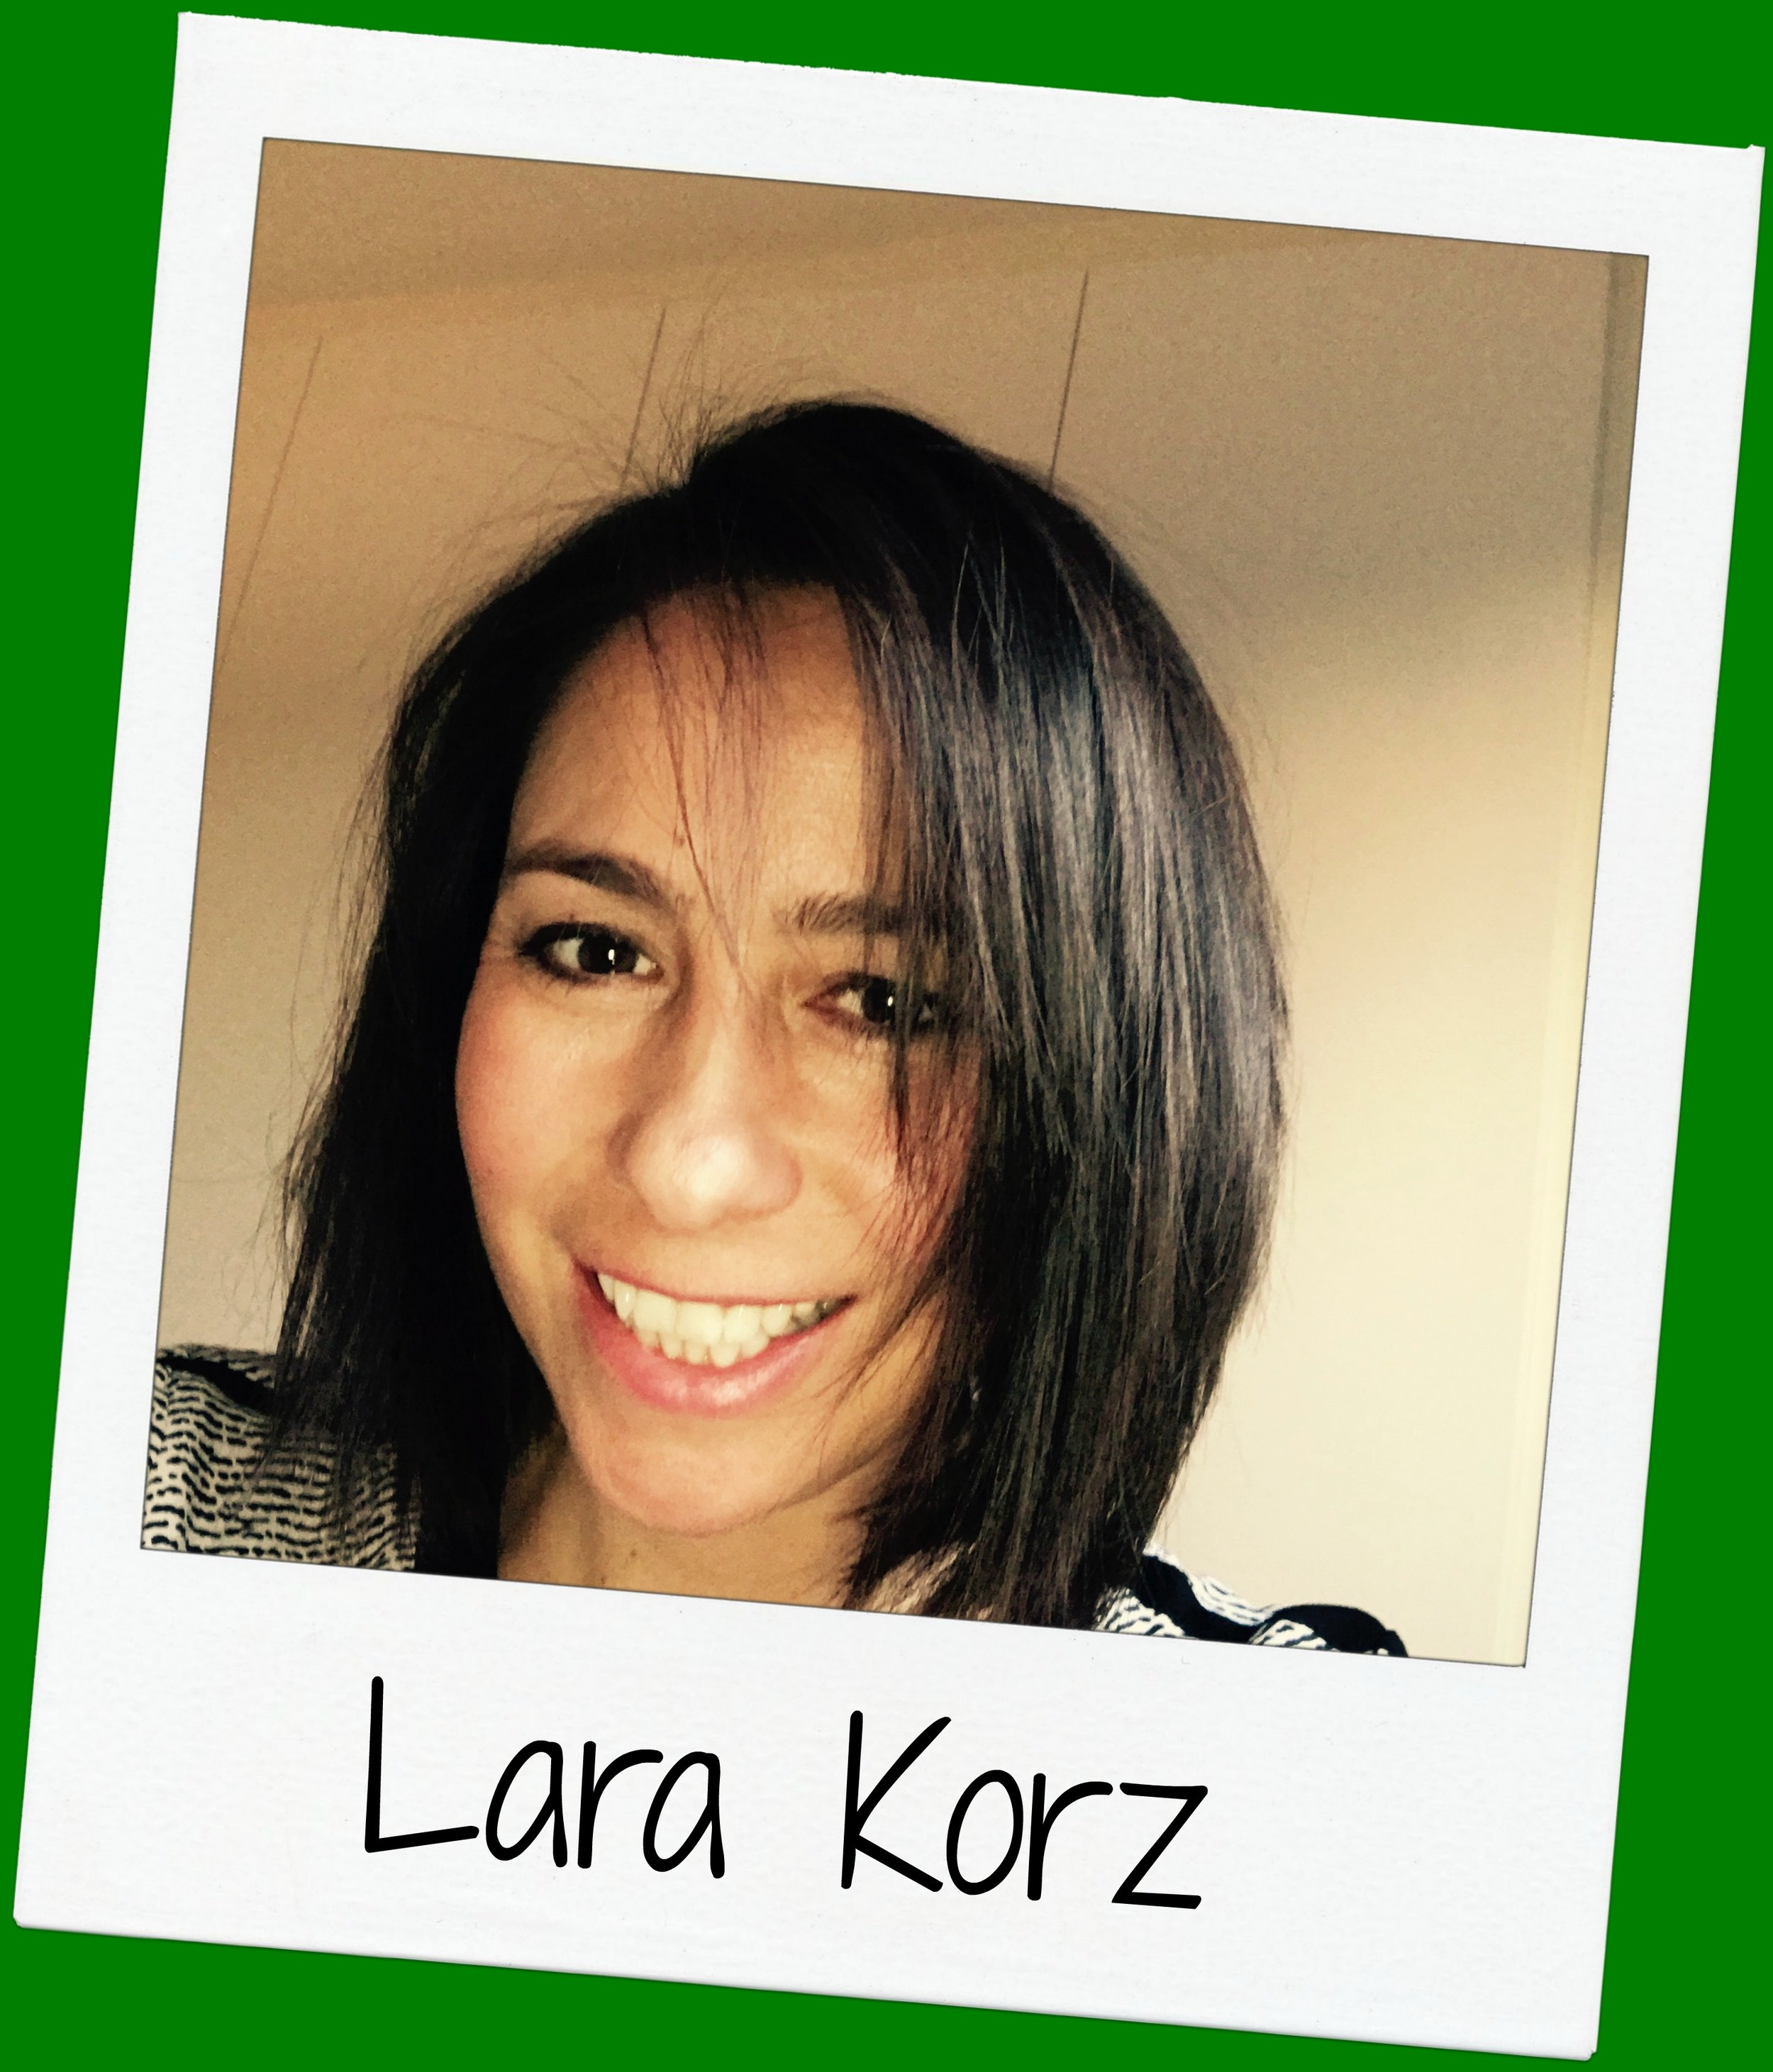 Lara has over 20 years experience working in London and New York for insurance companies and loves to be knee deep in spreadsheets, focusing on data analytics to help insurance companies look for trends and report on performance.